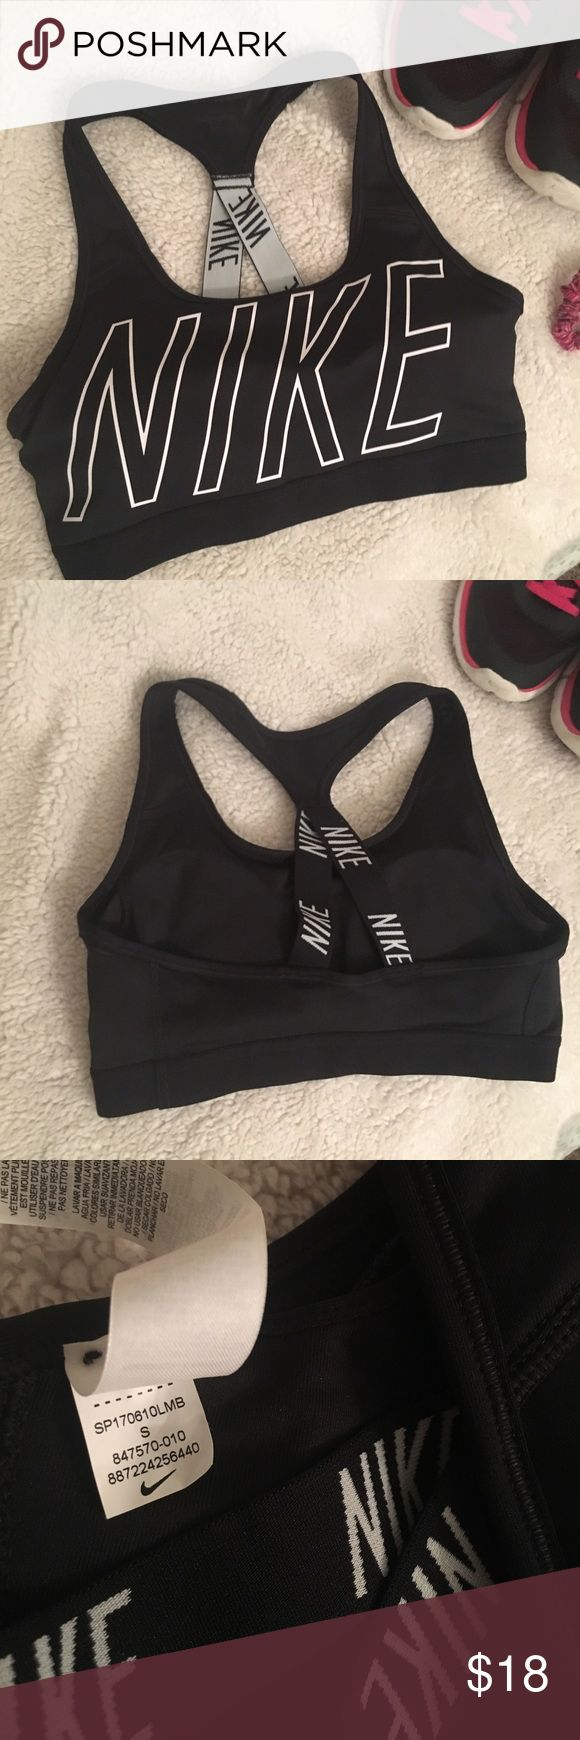 nike • padded sports bra Nike sports bra with removable pads in great condition, perfect for the gym or just lounging around!                       Shoes in pic are also available! Look for the listing in my closet Nike Intimates & Sleepwear Bras